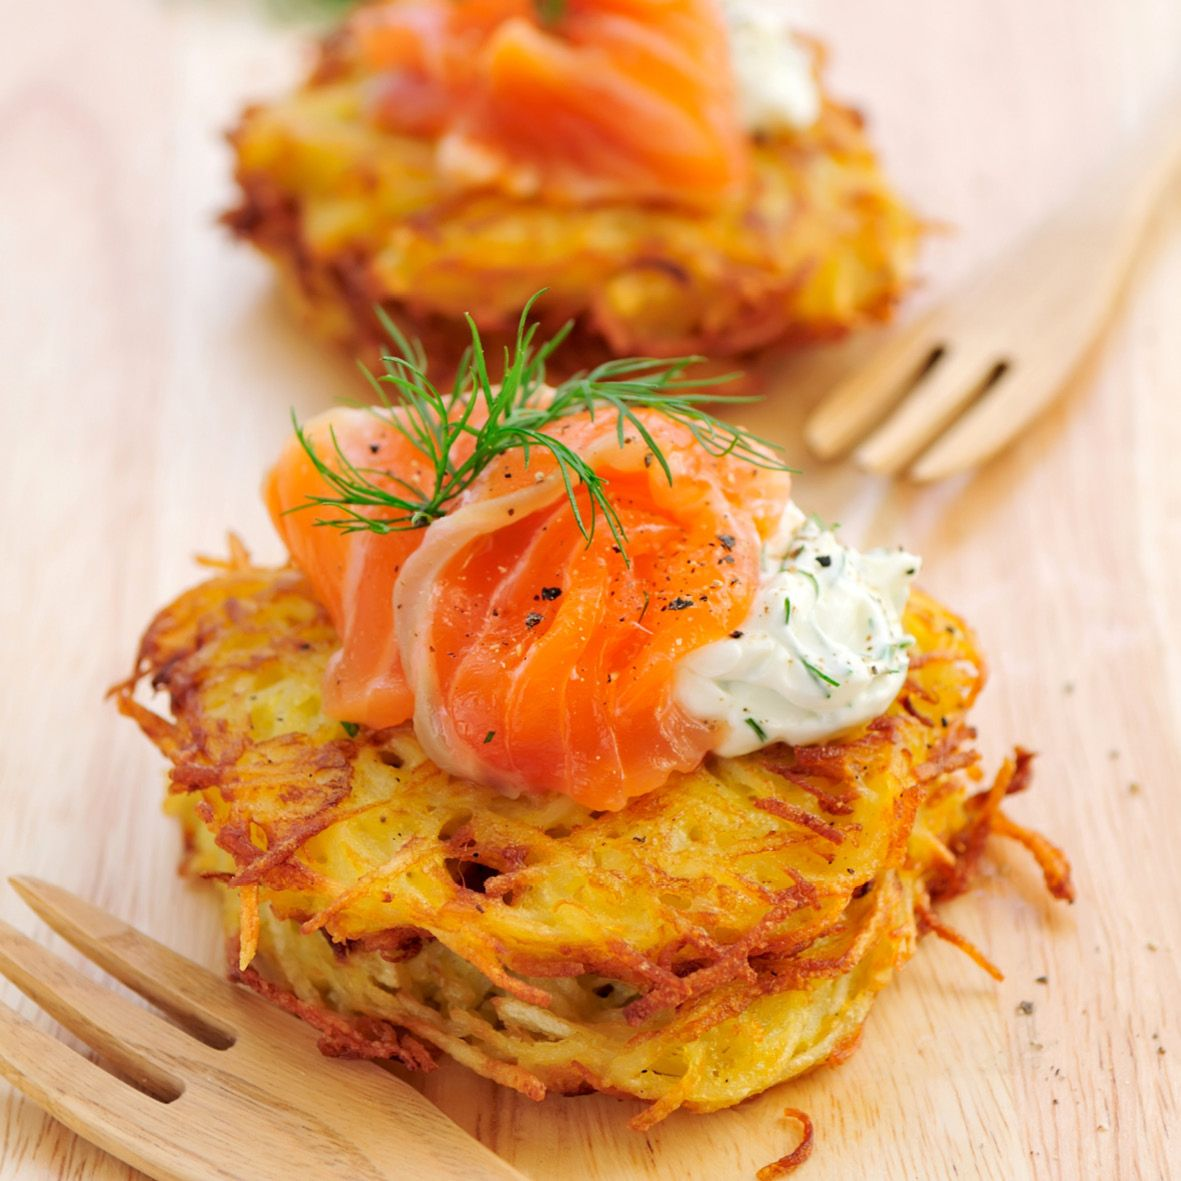 Potato_rosti_with_smoked_salmon.jpg